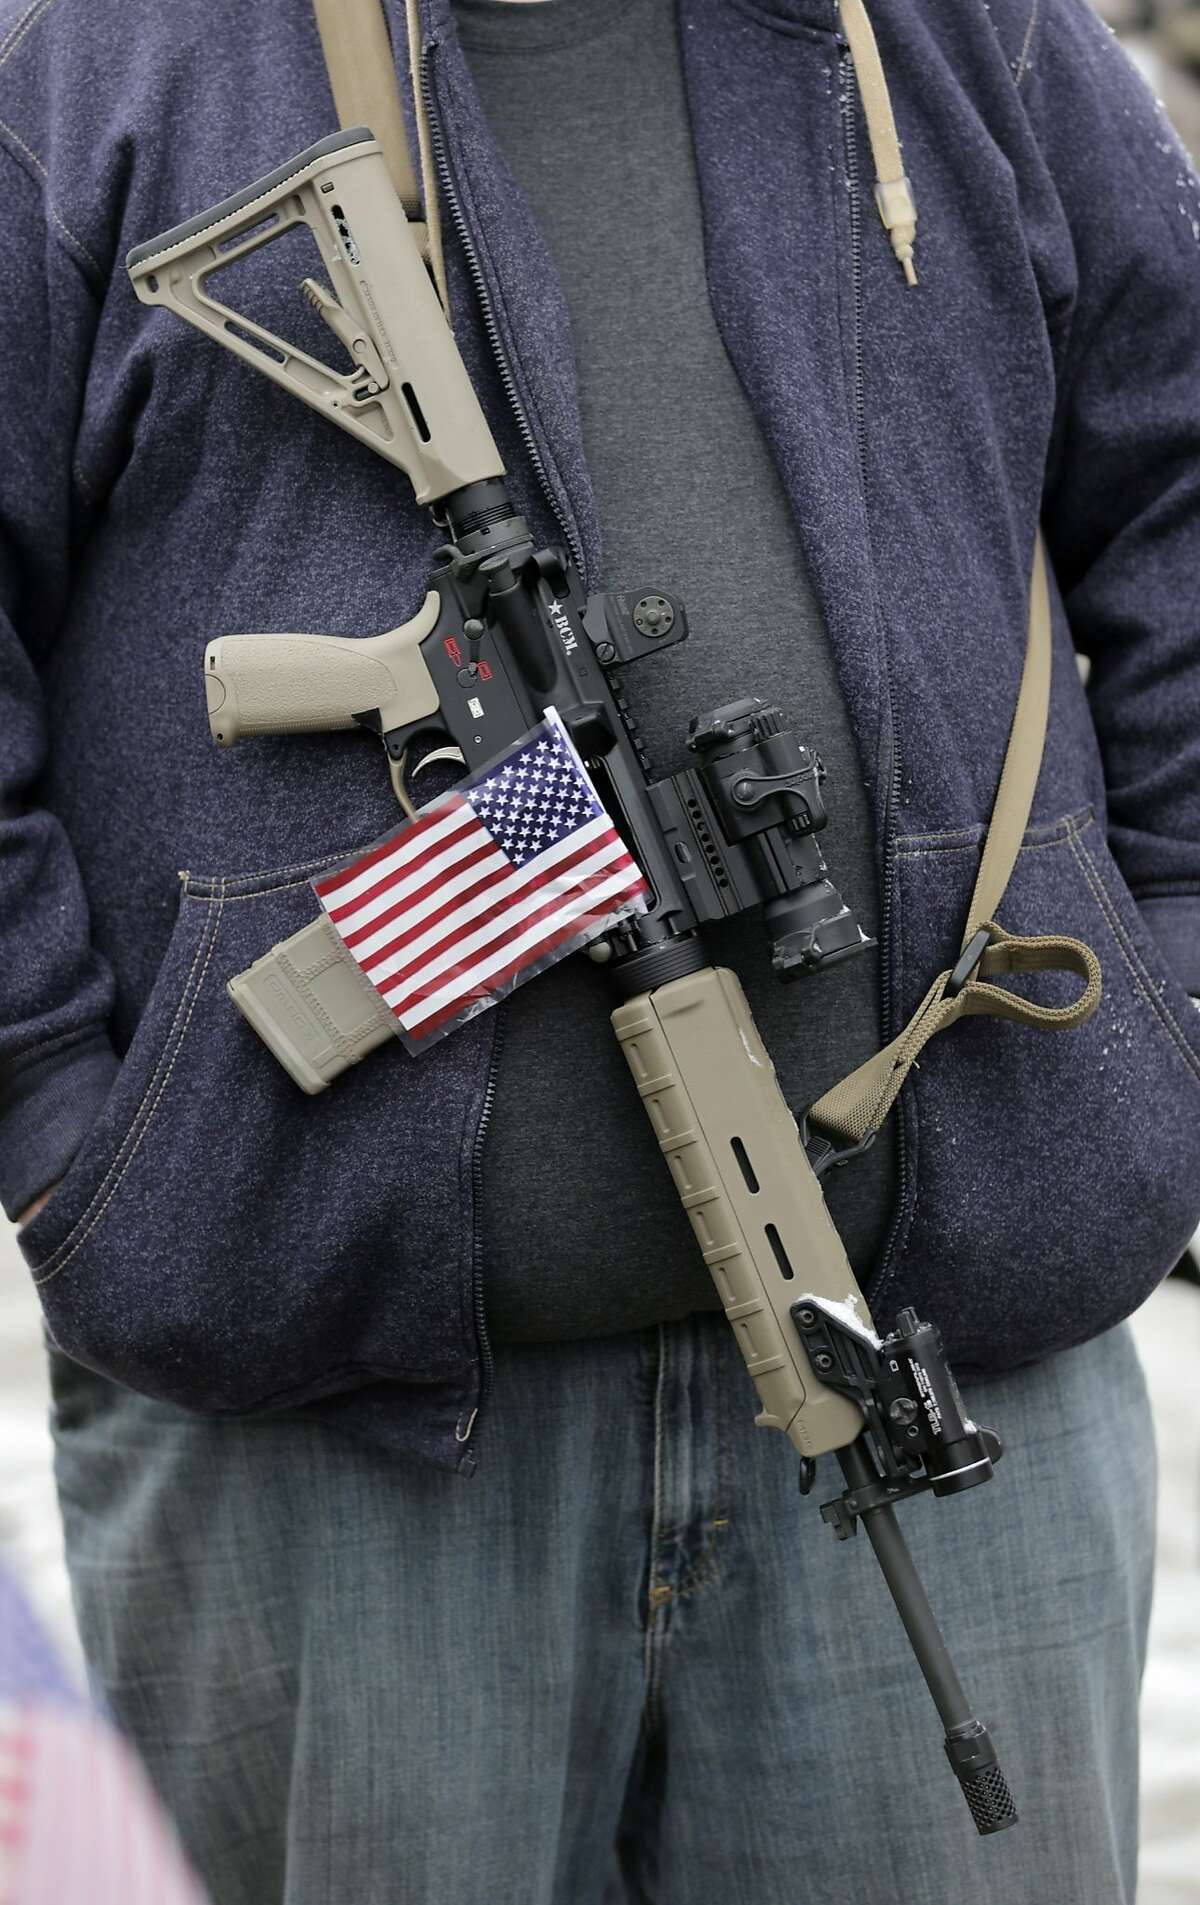 FILE - In this Saturday, Feb. 23, 2013 file photo, a gun-rights activist carries his rifle decorated with a U.S. flag during a